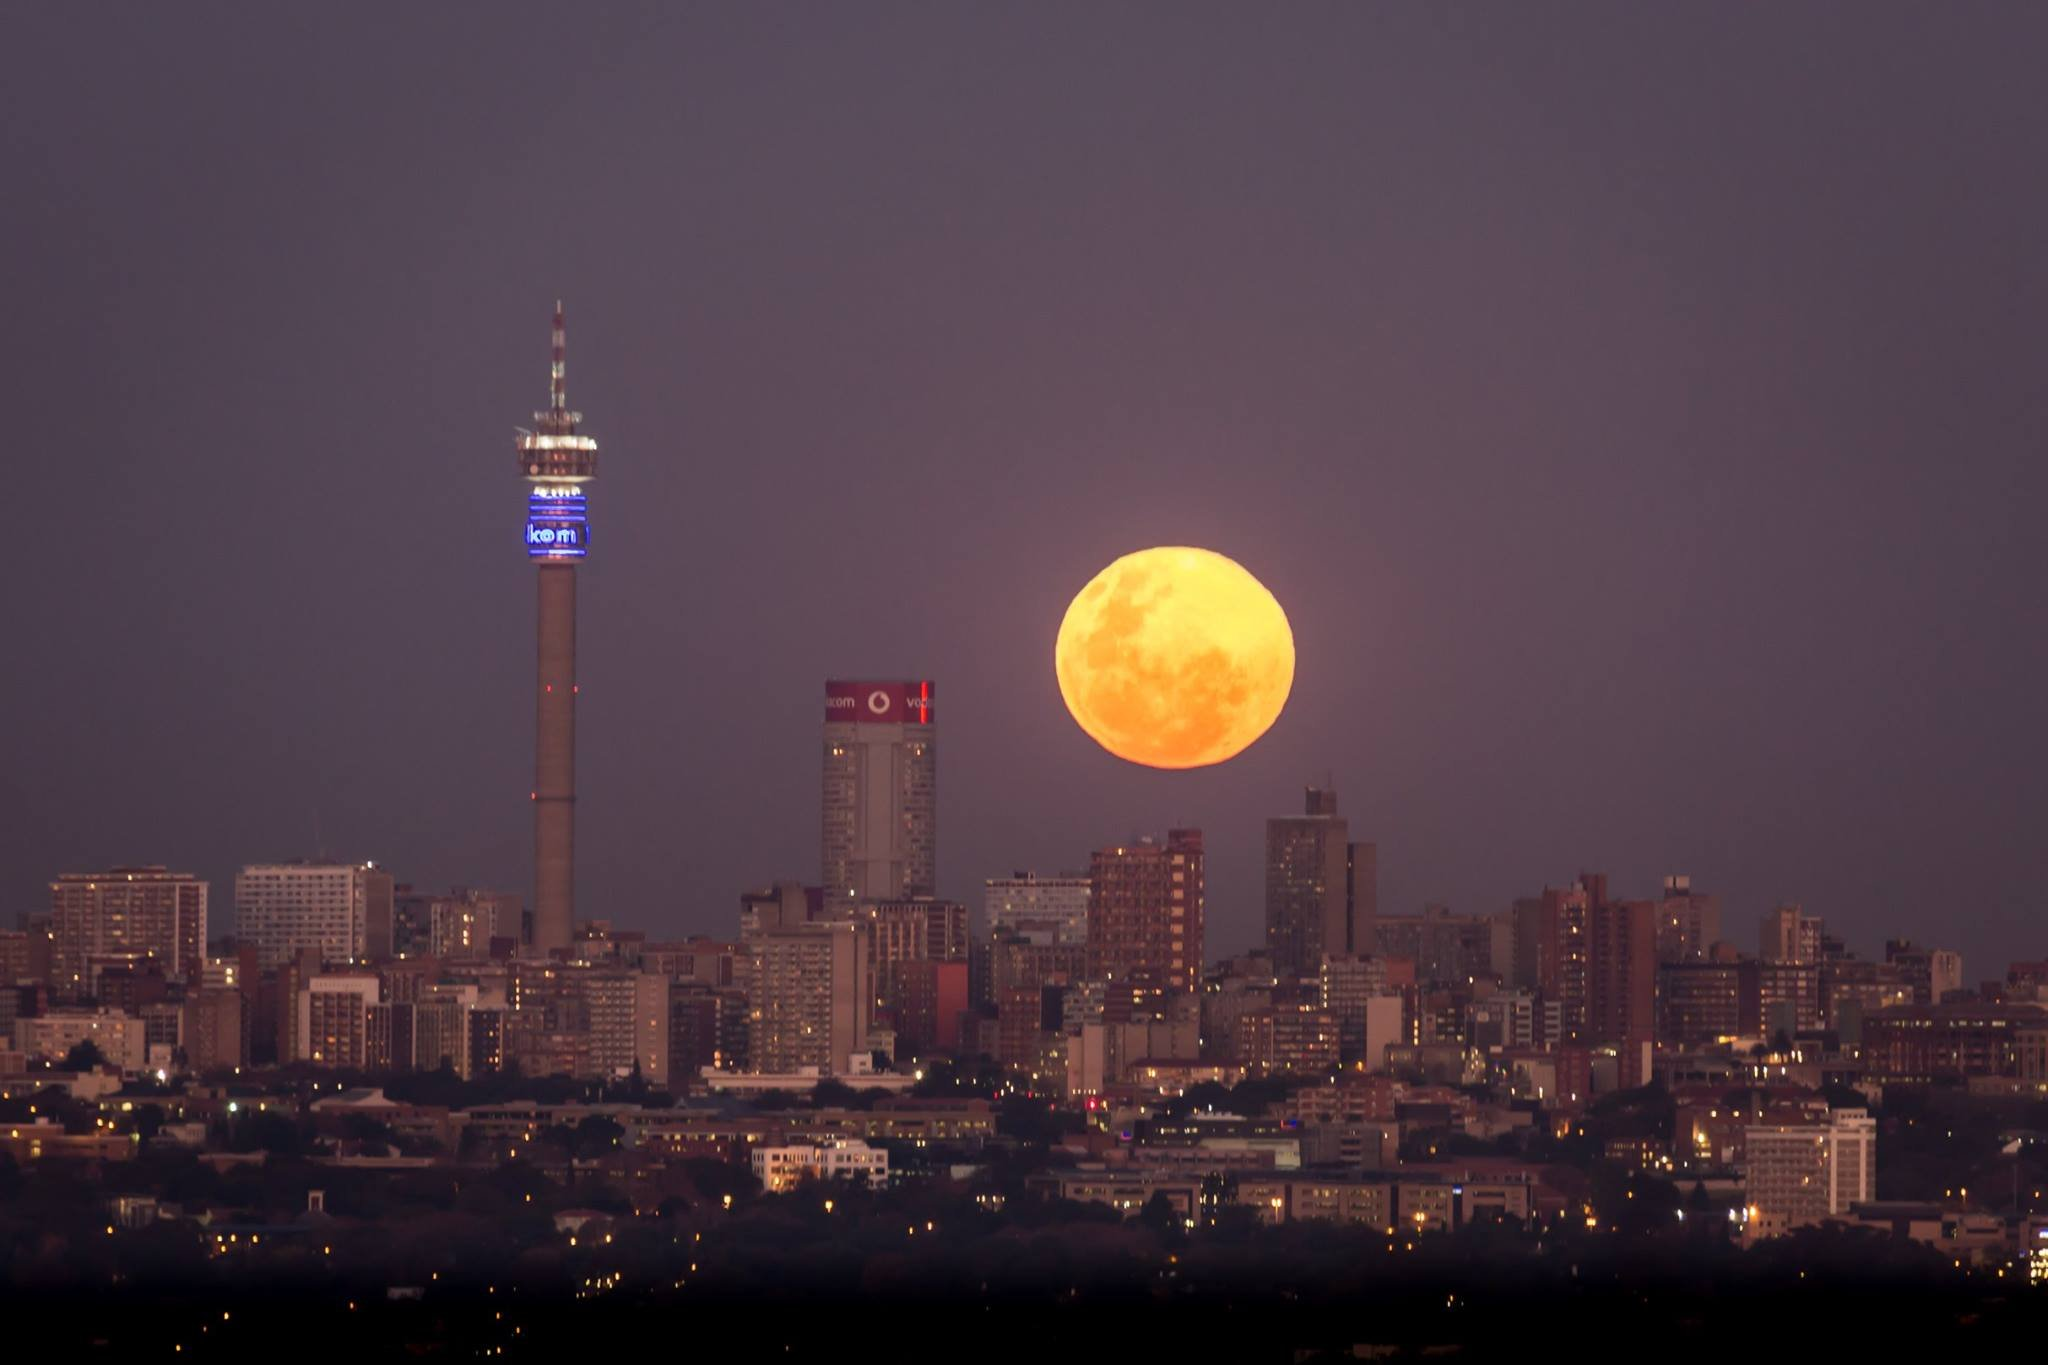 Johannesburg skyline picture is taking over social media moon thecheapjerseys Choice Image